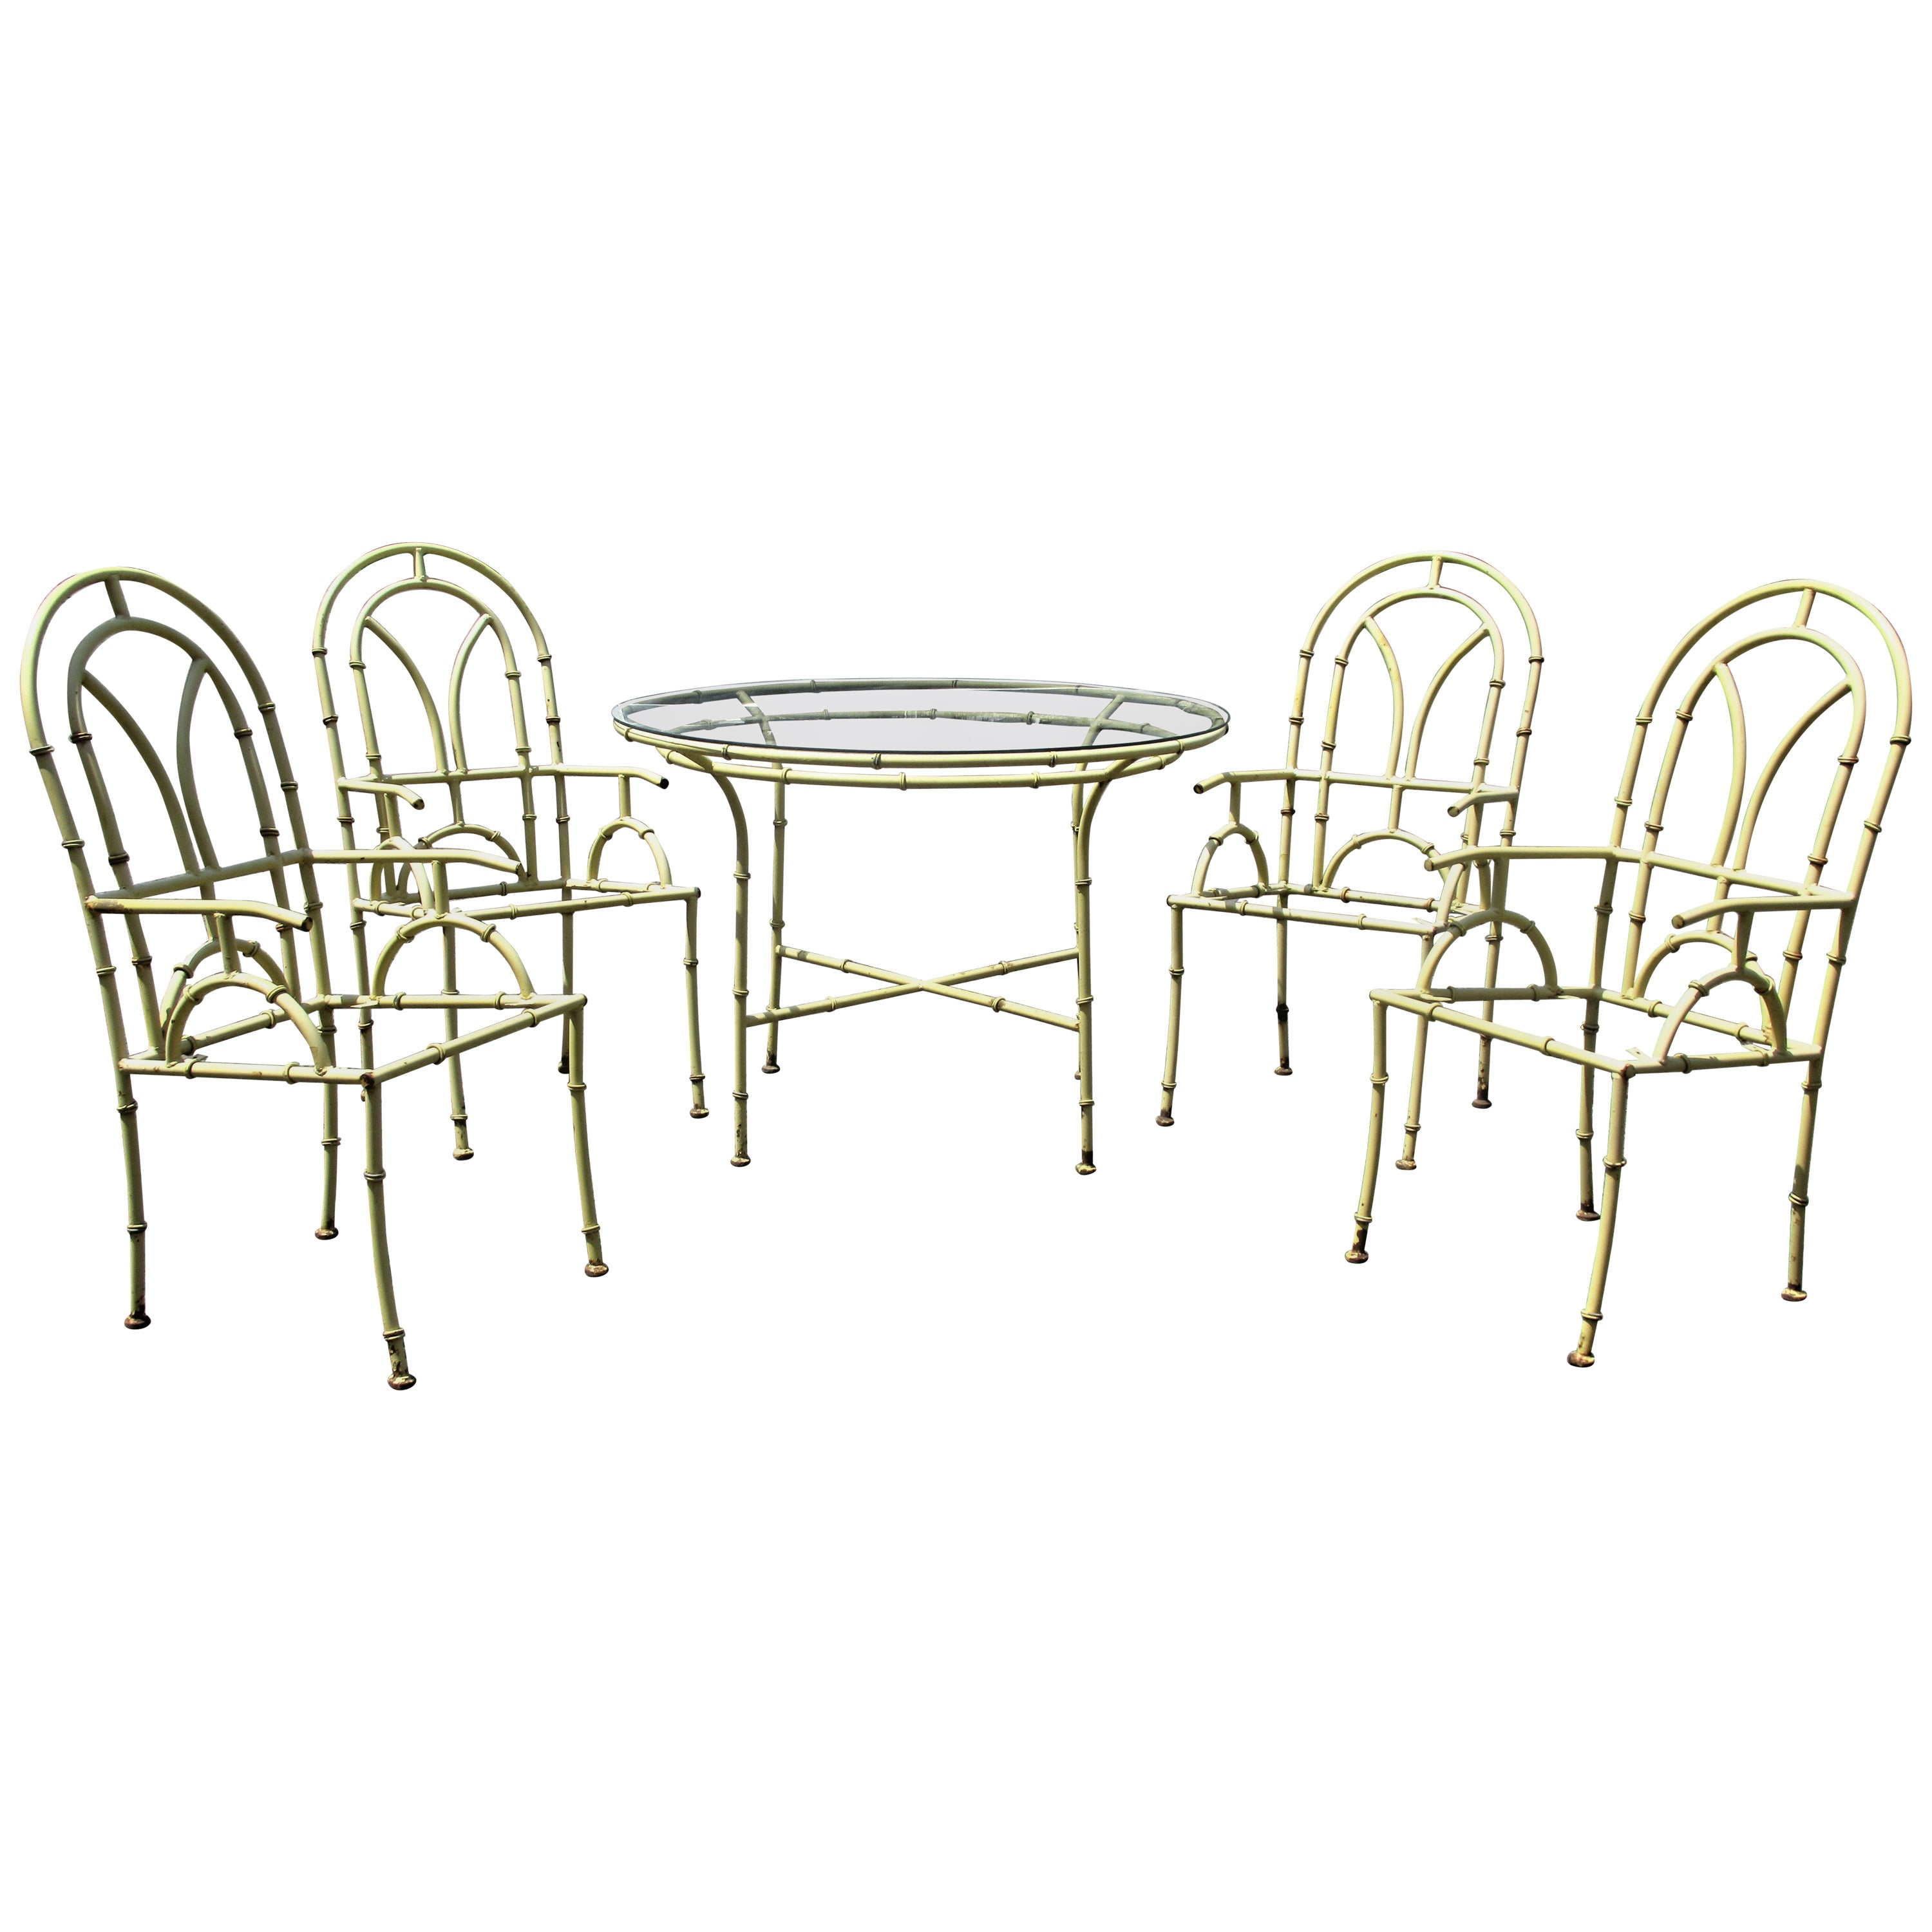 Hollywood Regency Faux Bamboo Metal Table and Chairs